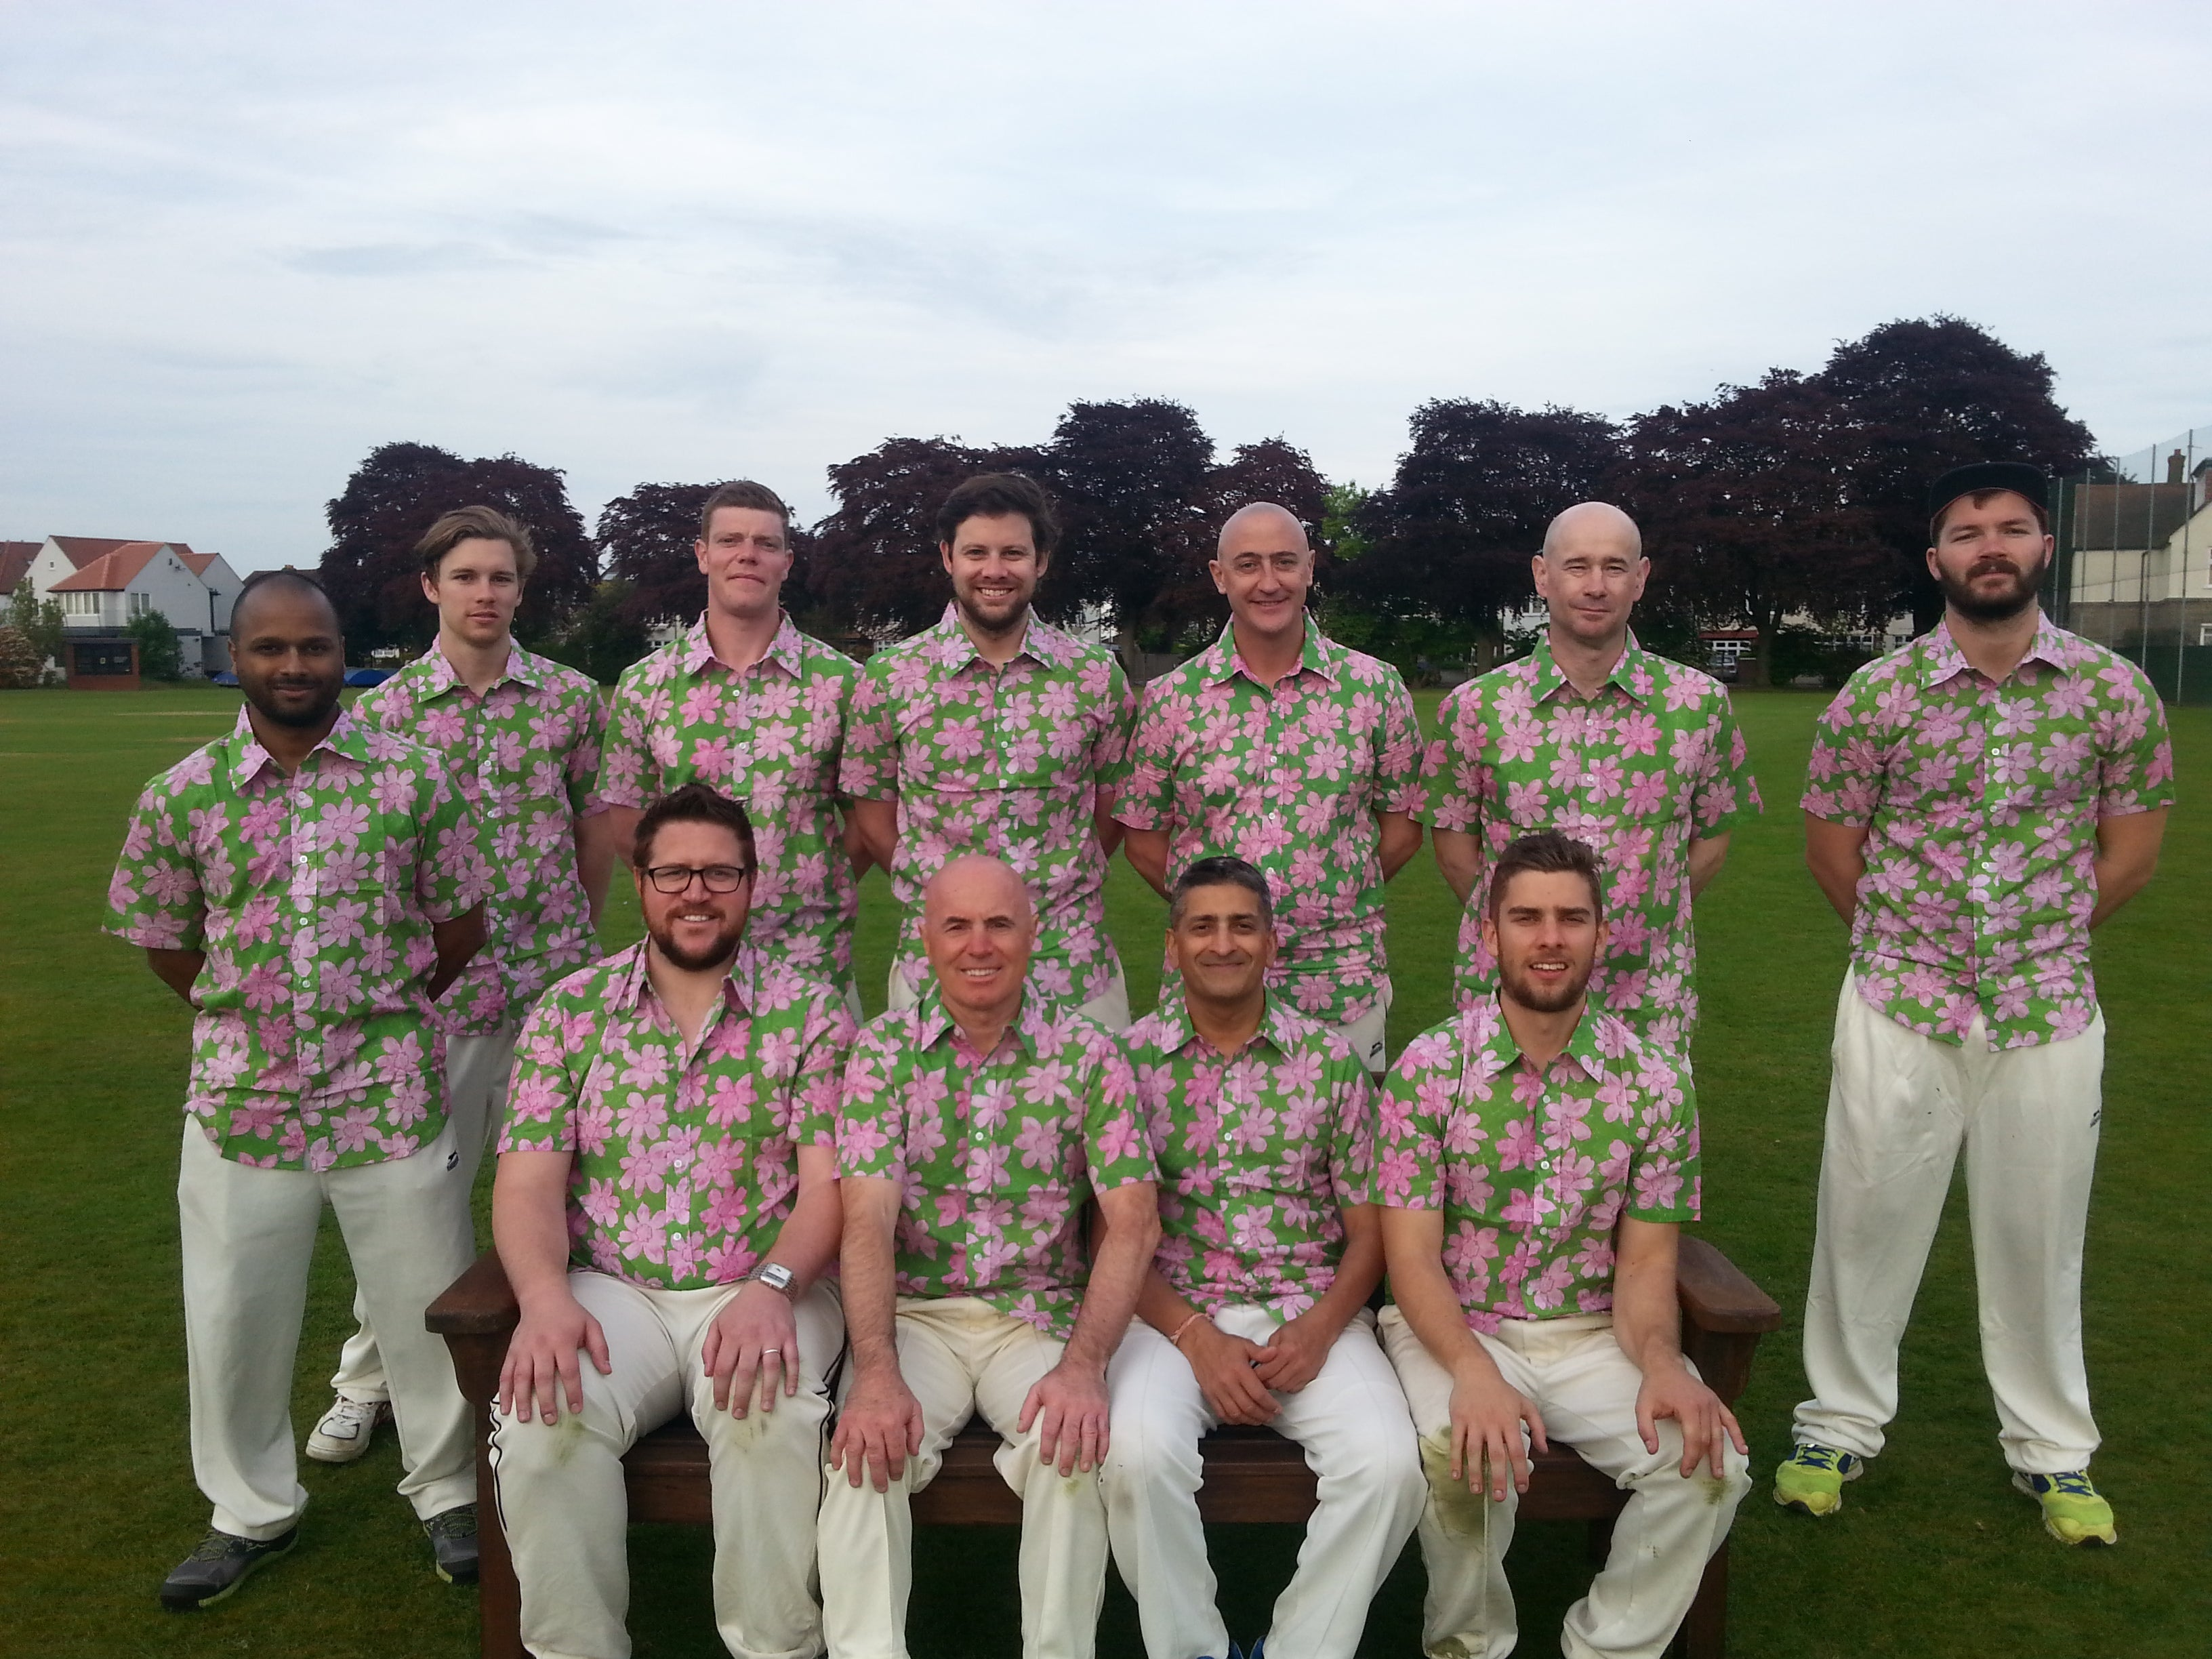 Australian Cricket Tours - Nepotists Cricket Club Team Photo Wearing Their Bent Banani Floral Shirts Team Wear After Playing At Barnes Cricket Club